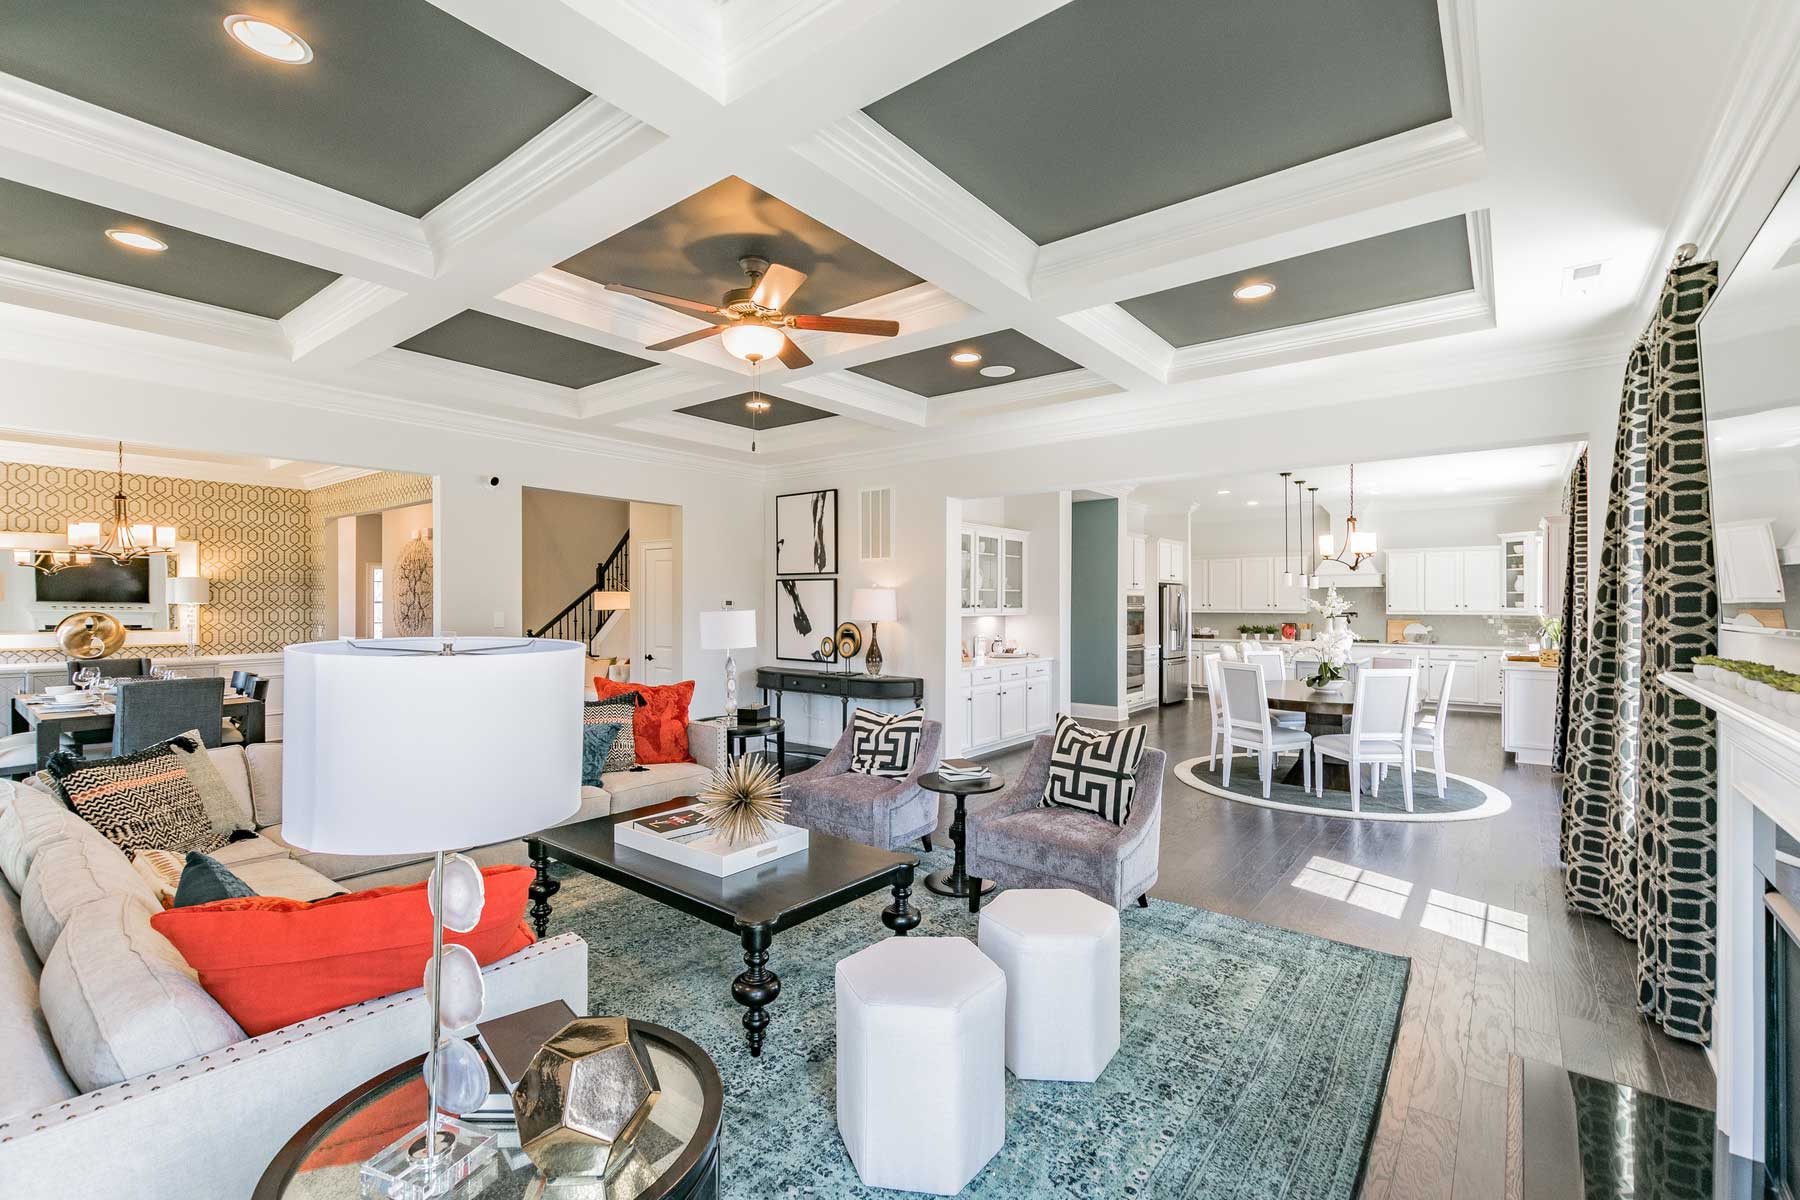 Blume The Magnolias Homes for Sale in Harrisburg NC M I Homes